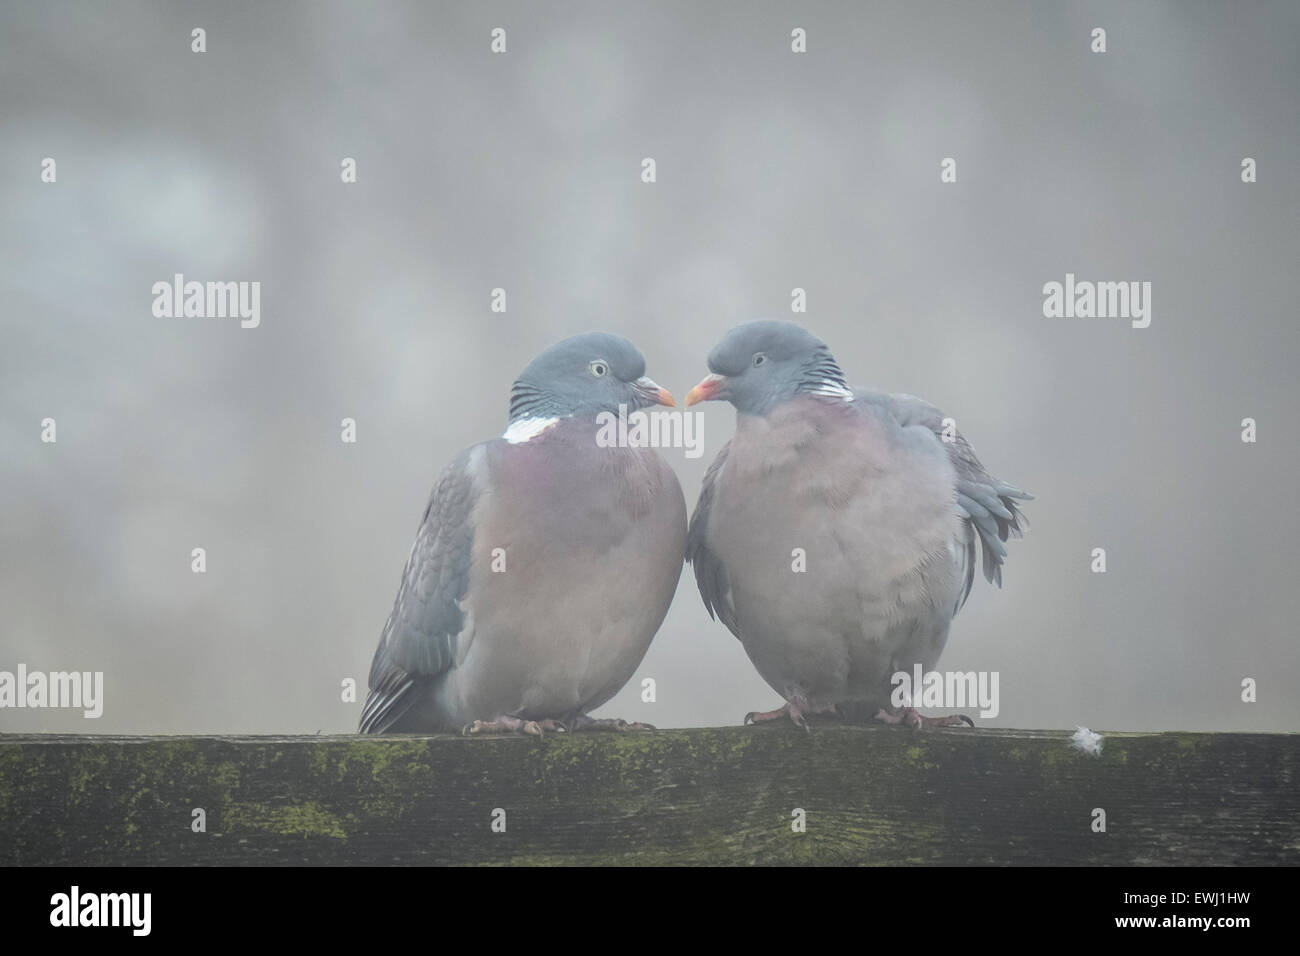 Two doves flirting in a gray and cold environment, they form the shape of a heart - Stock Image